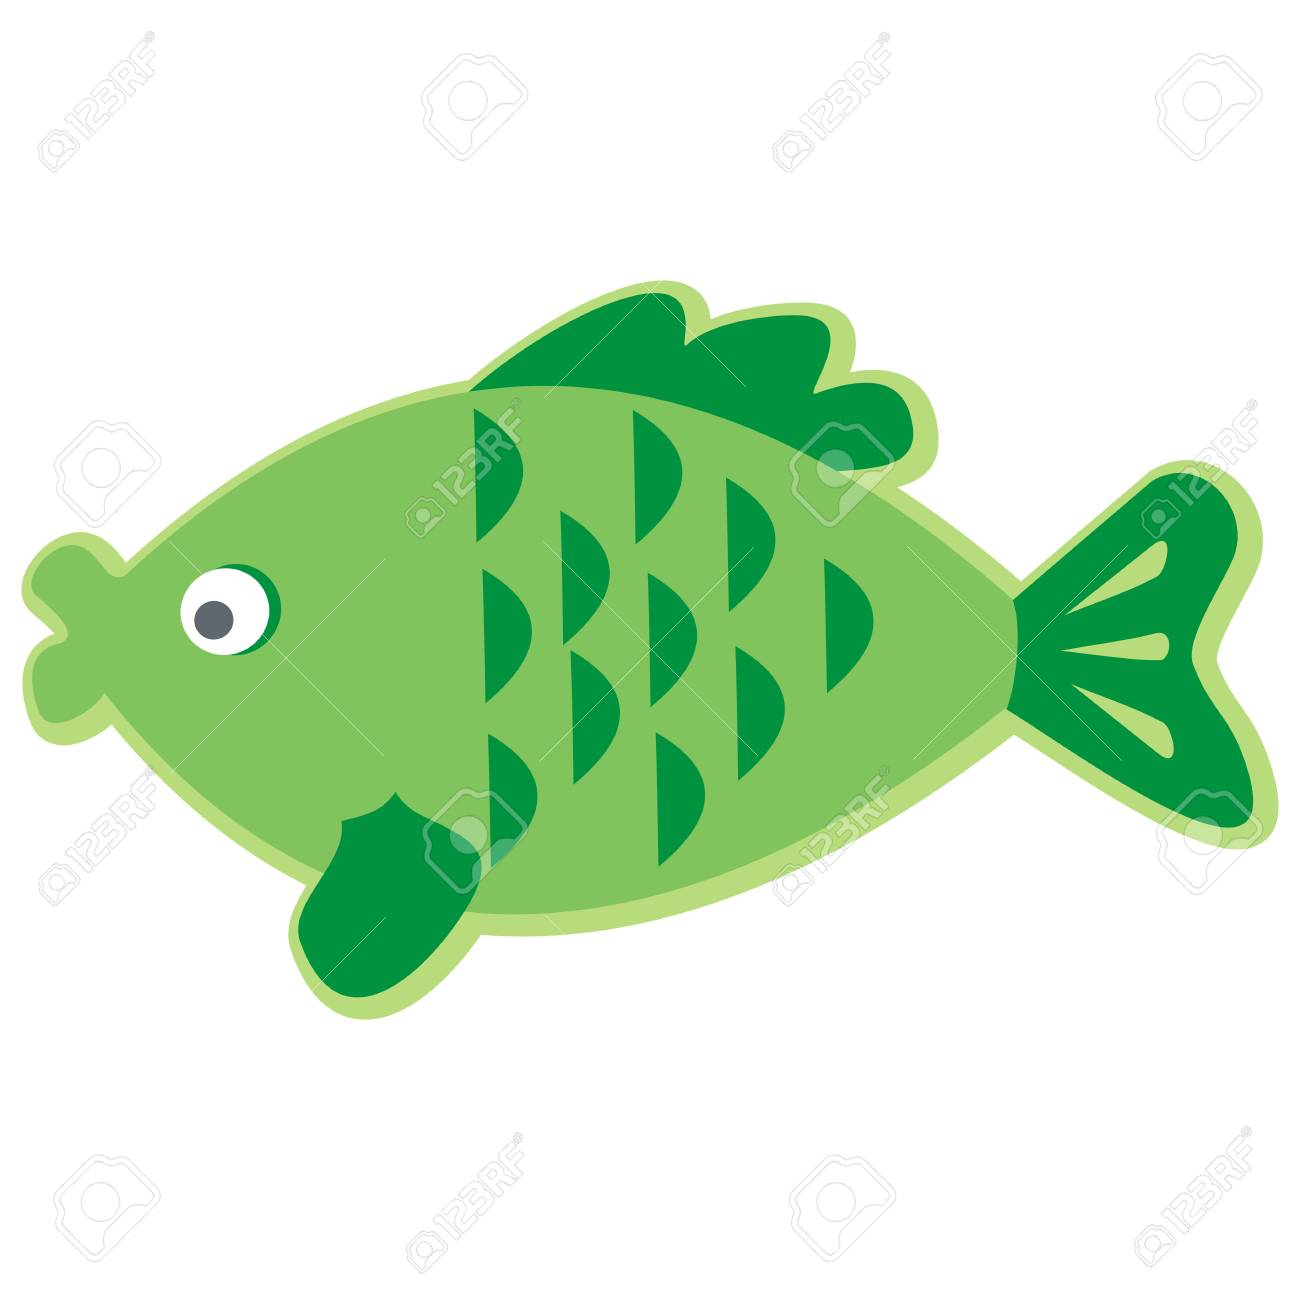 Green fish with scales and fins..